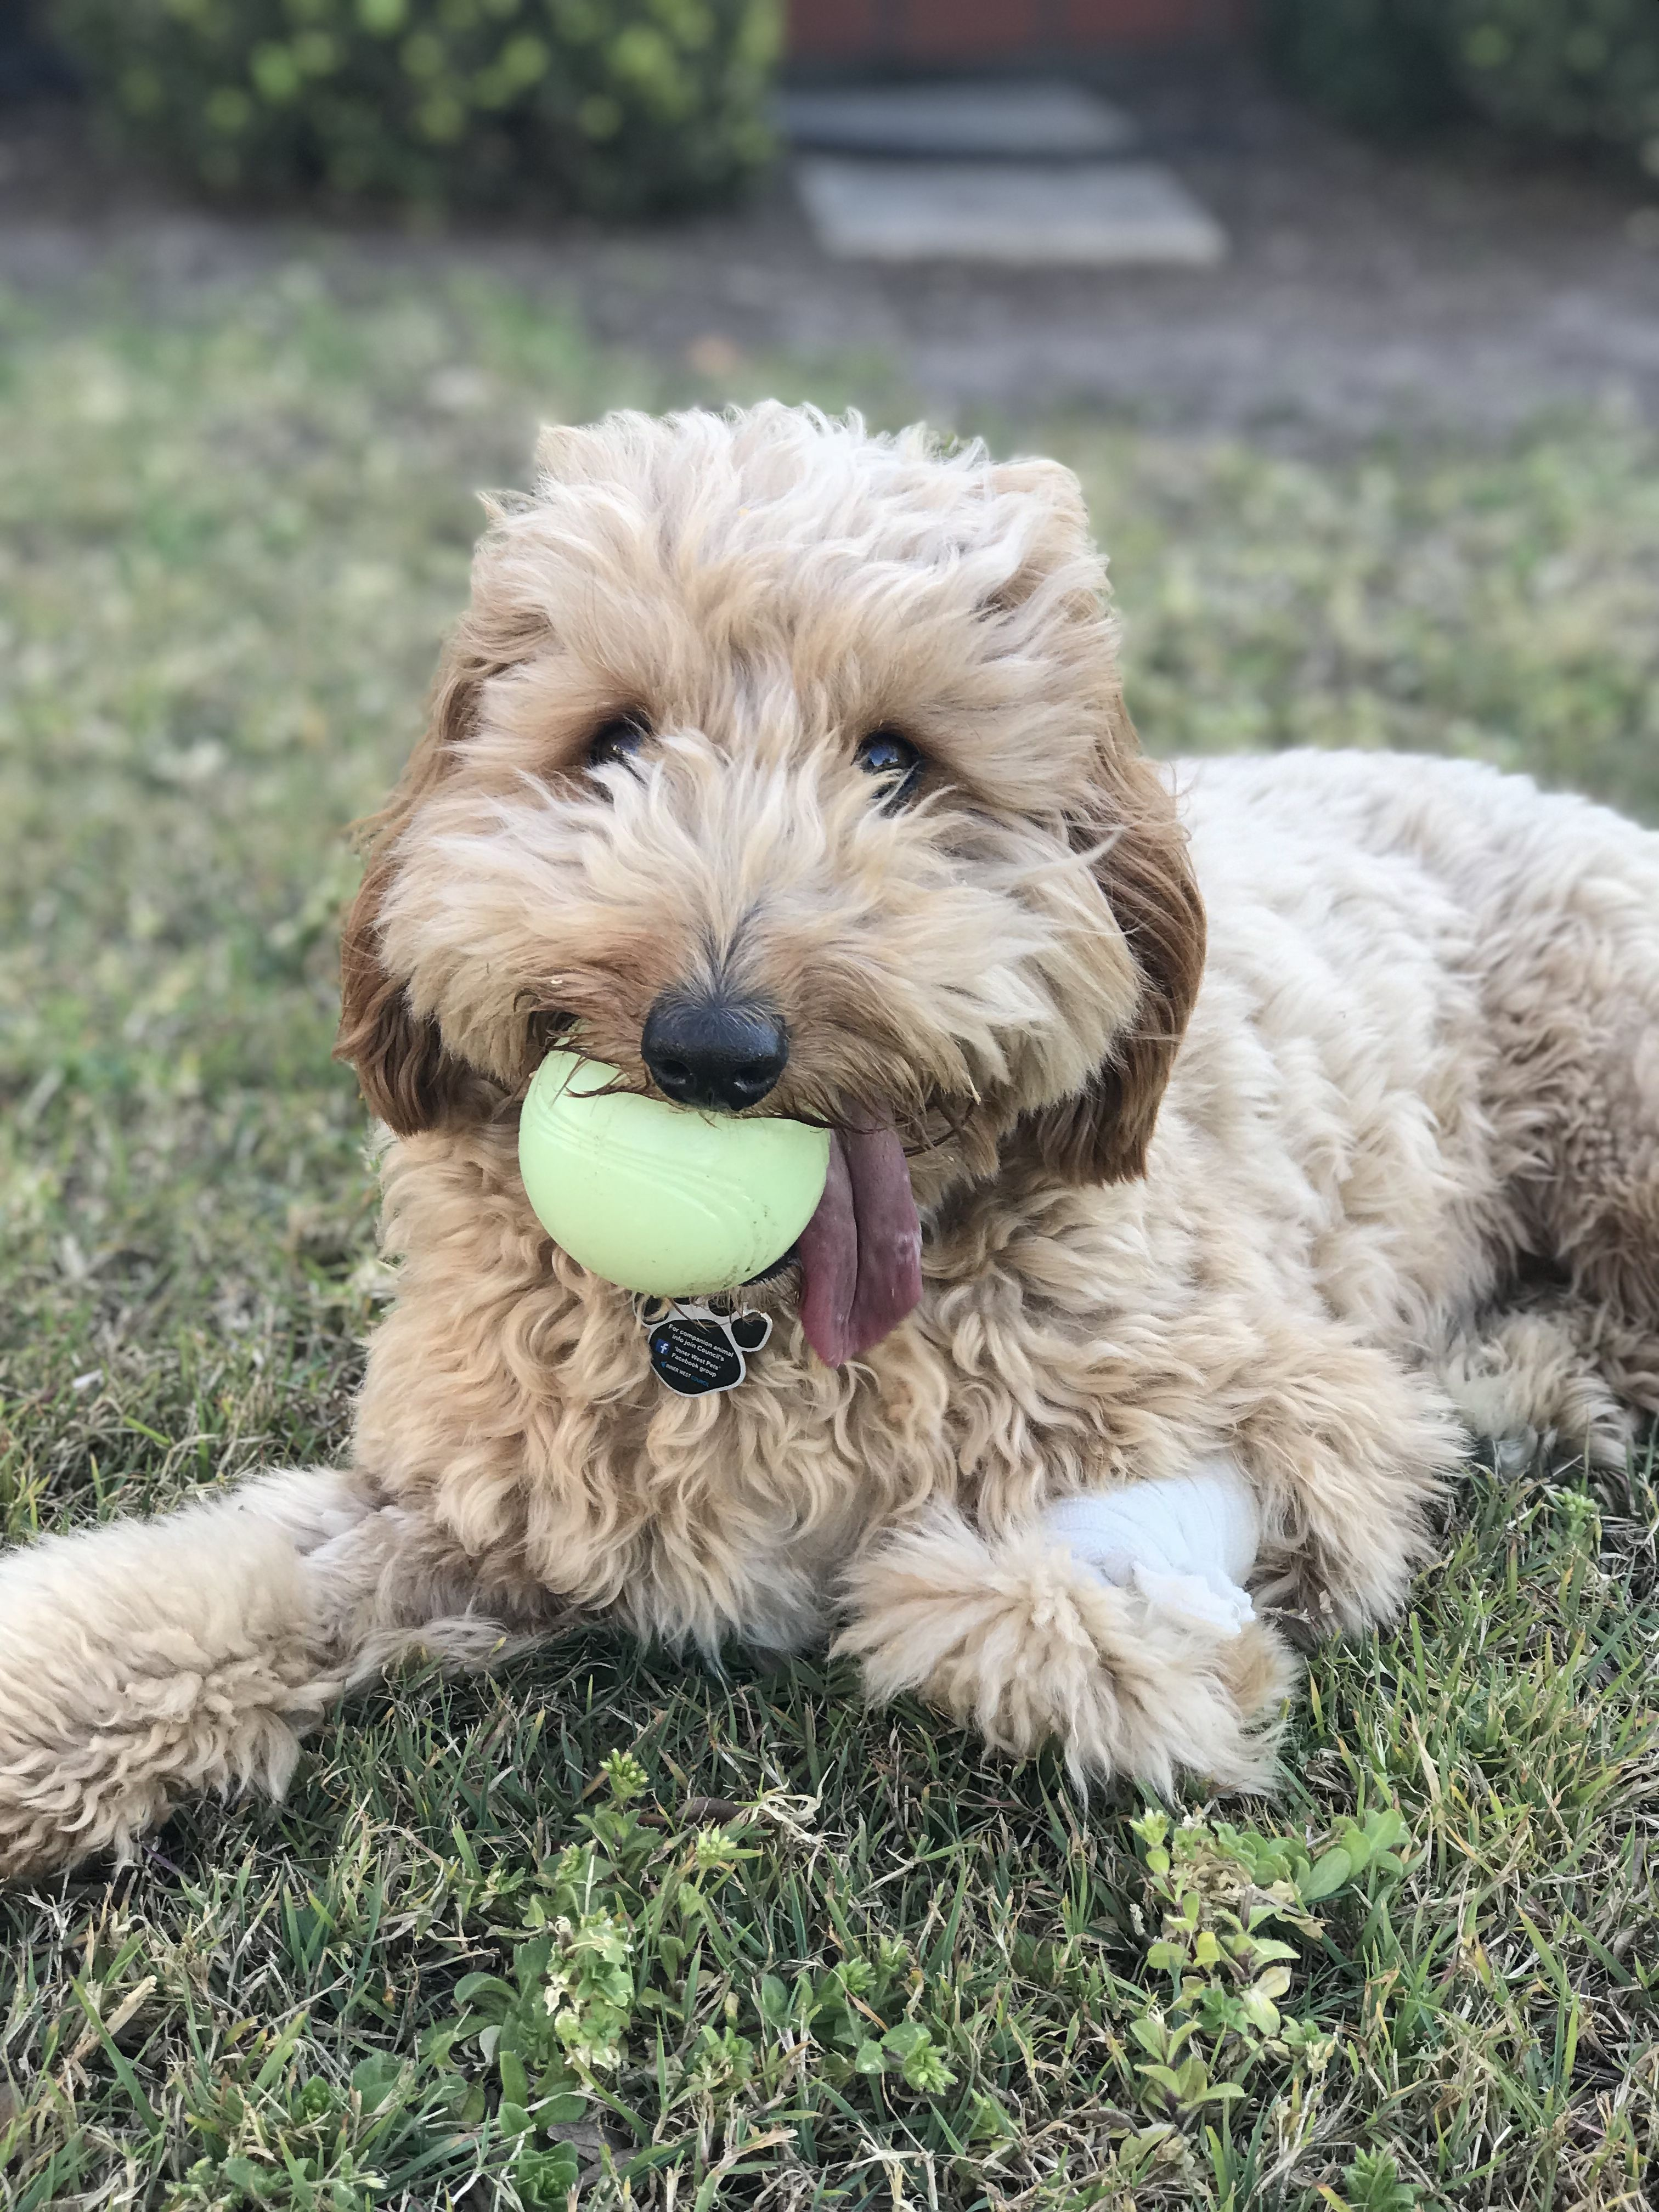 Tongue Hanging Out Of His Mouth Dex Still Needs To Keep His Ball Cavoodle Dogs Dog Friends Animals